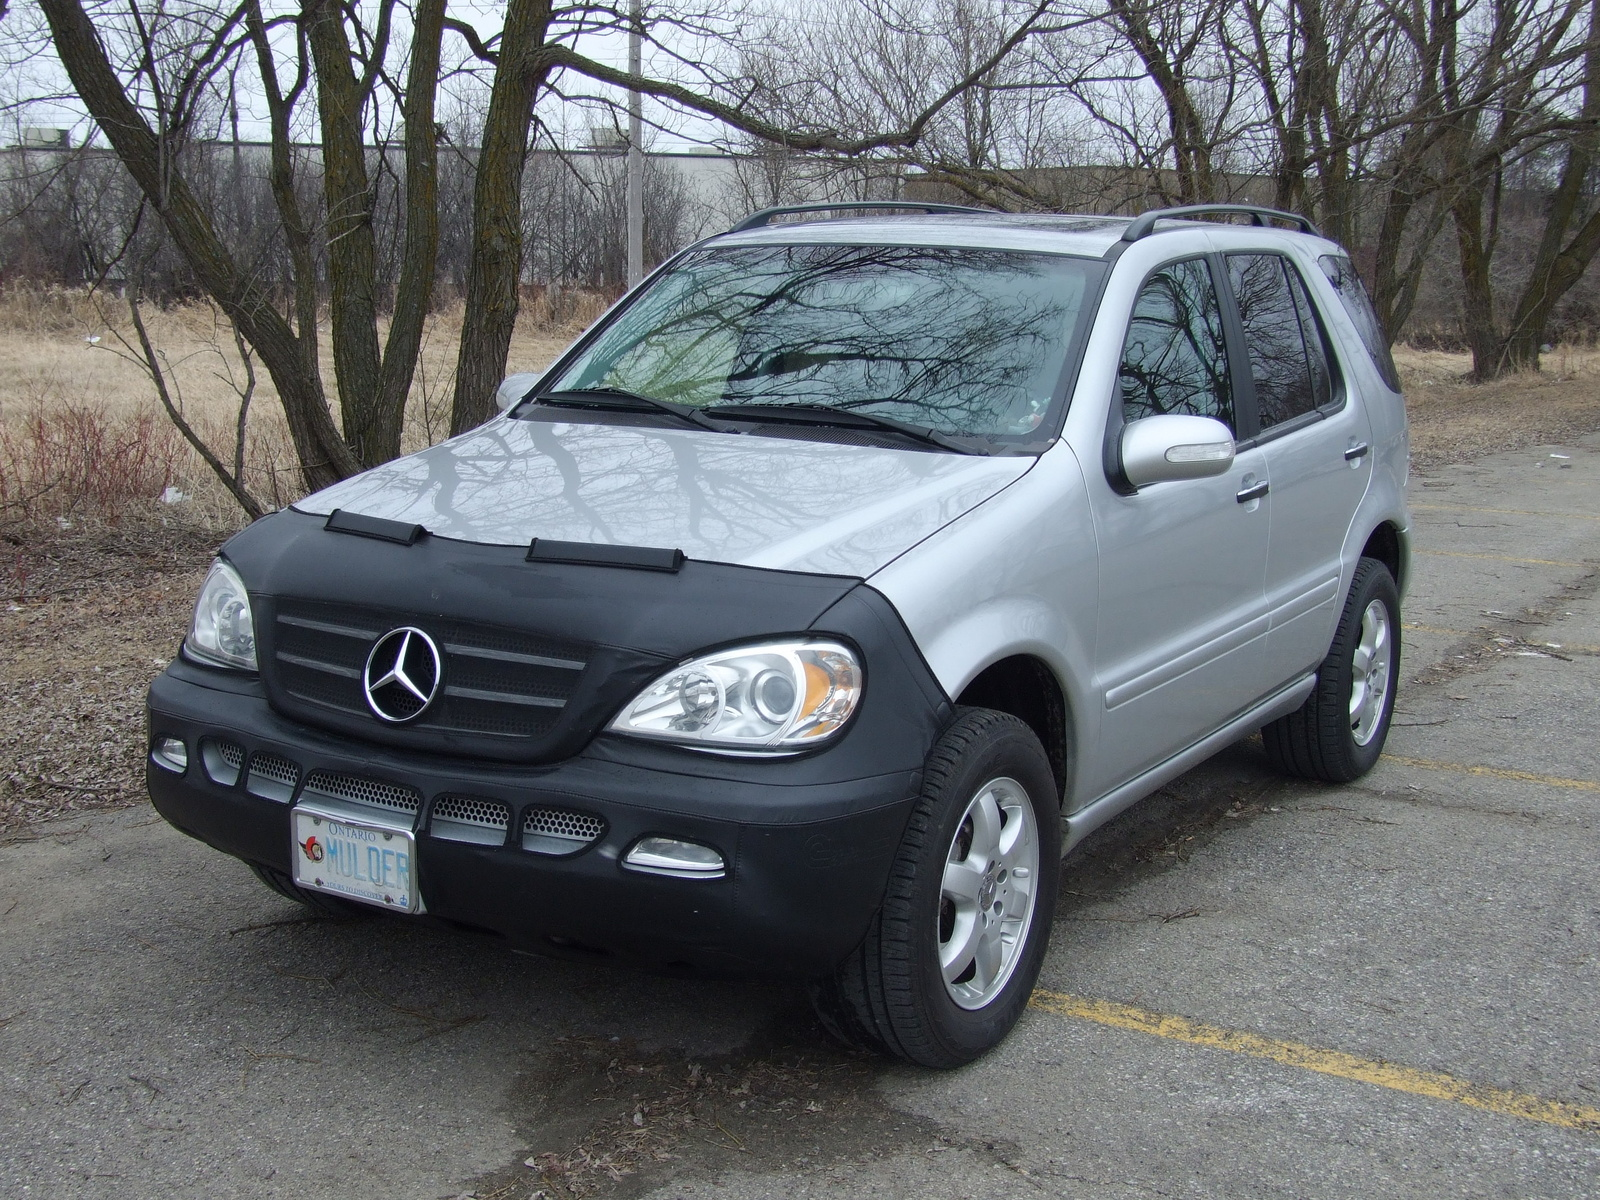 Picture of 2003 mercedes benz m class ml500 exterior for 2003 mercedes benz suv